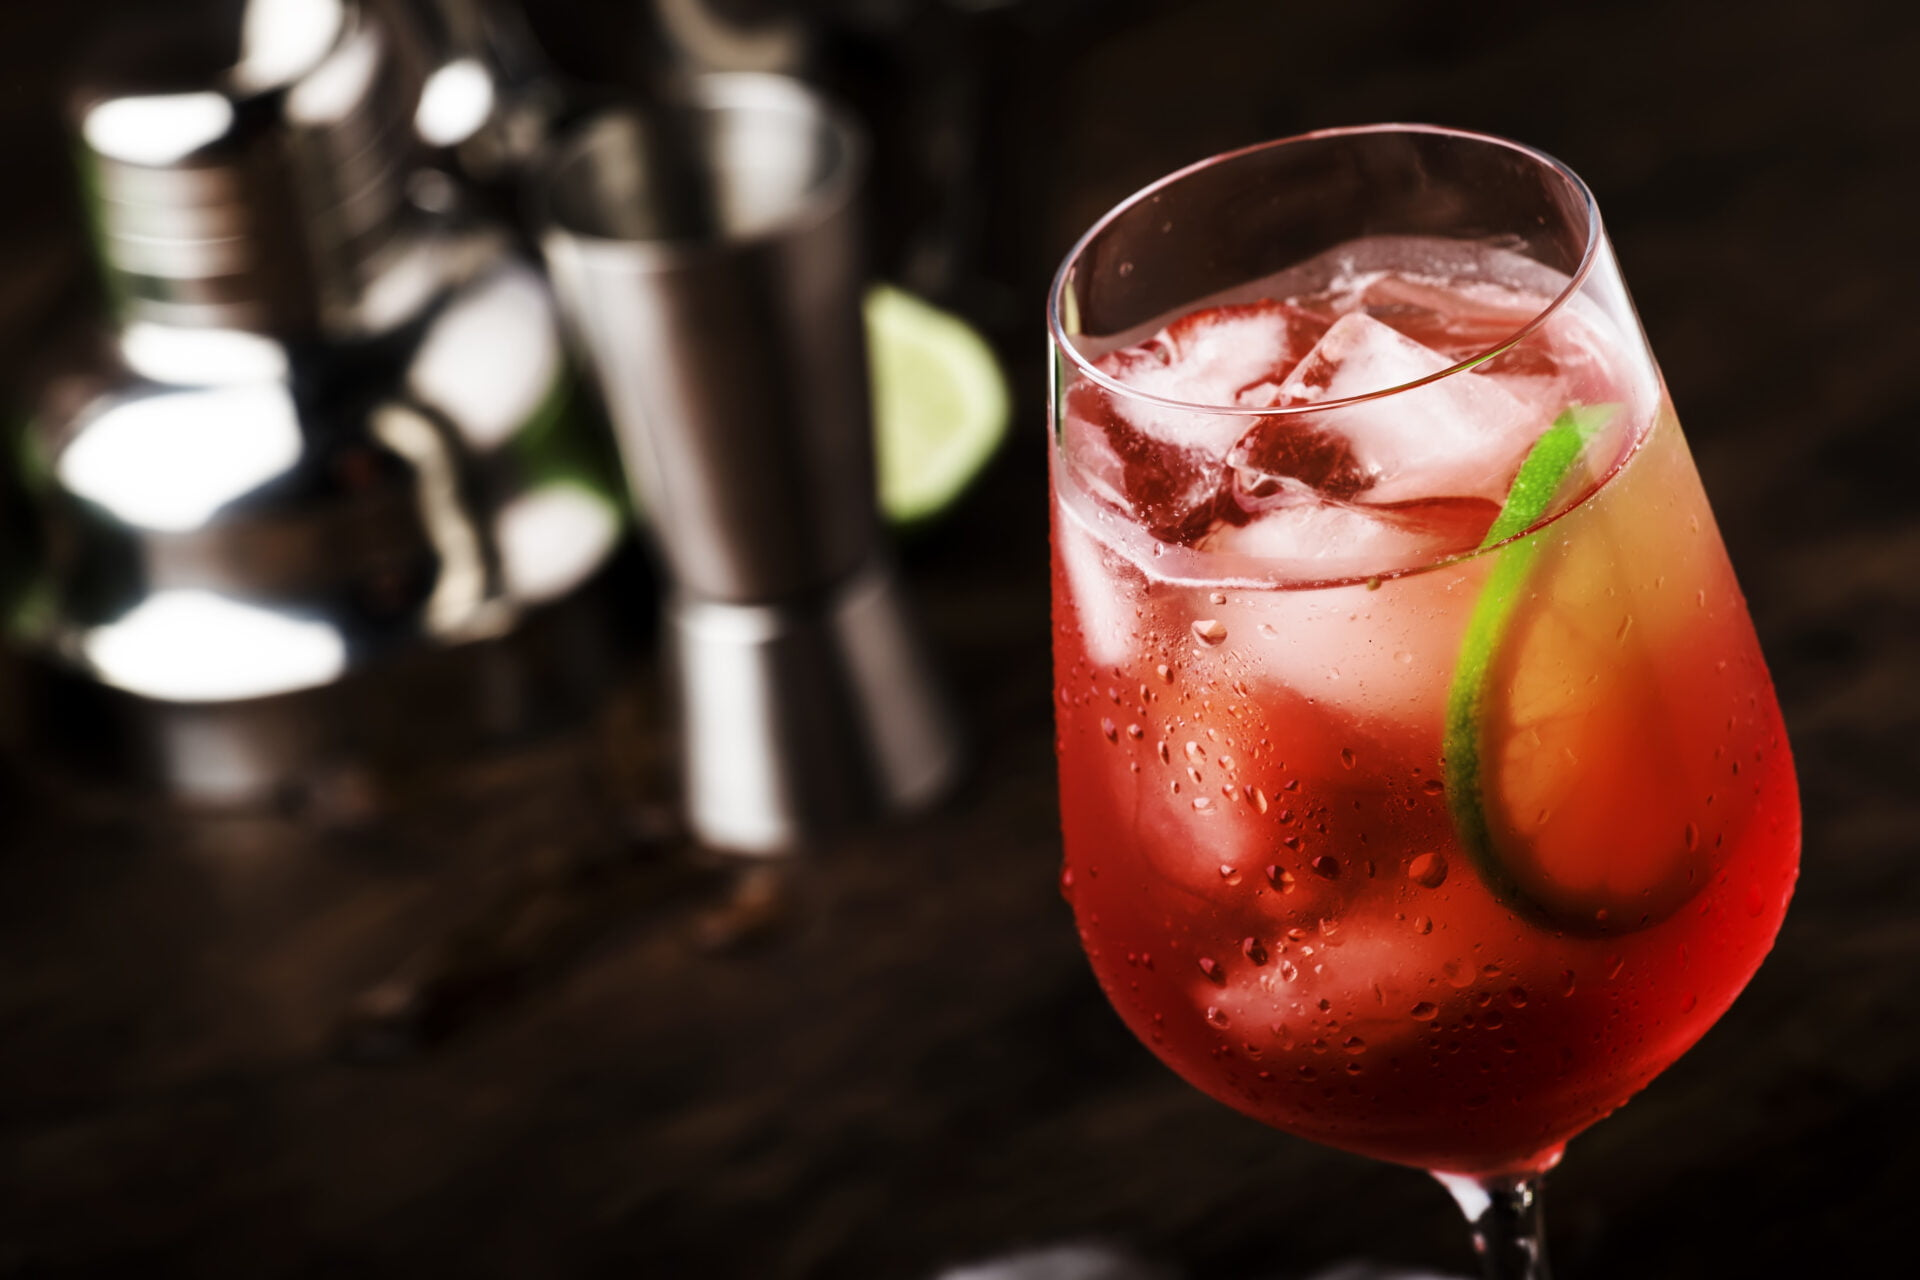 Campari tonic alcoholic cocktail with red bitter, tonic, lime and ice. Old wooden table background & bar tools